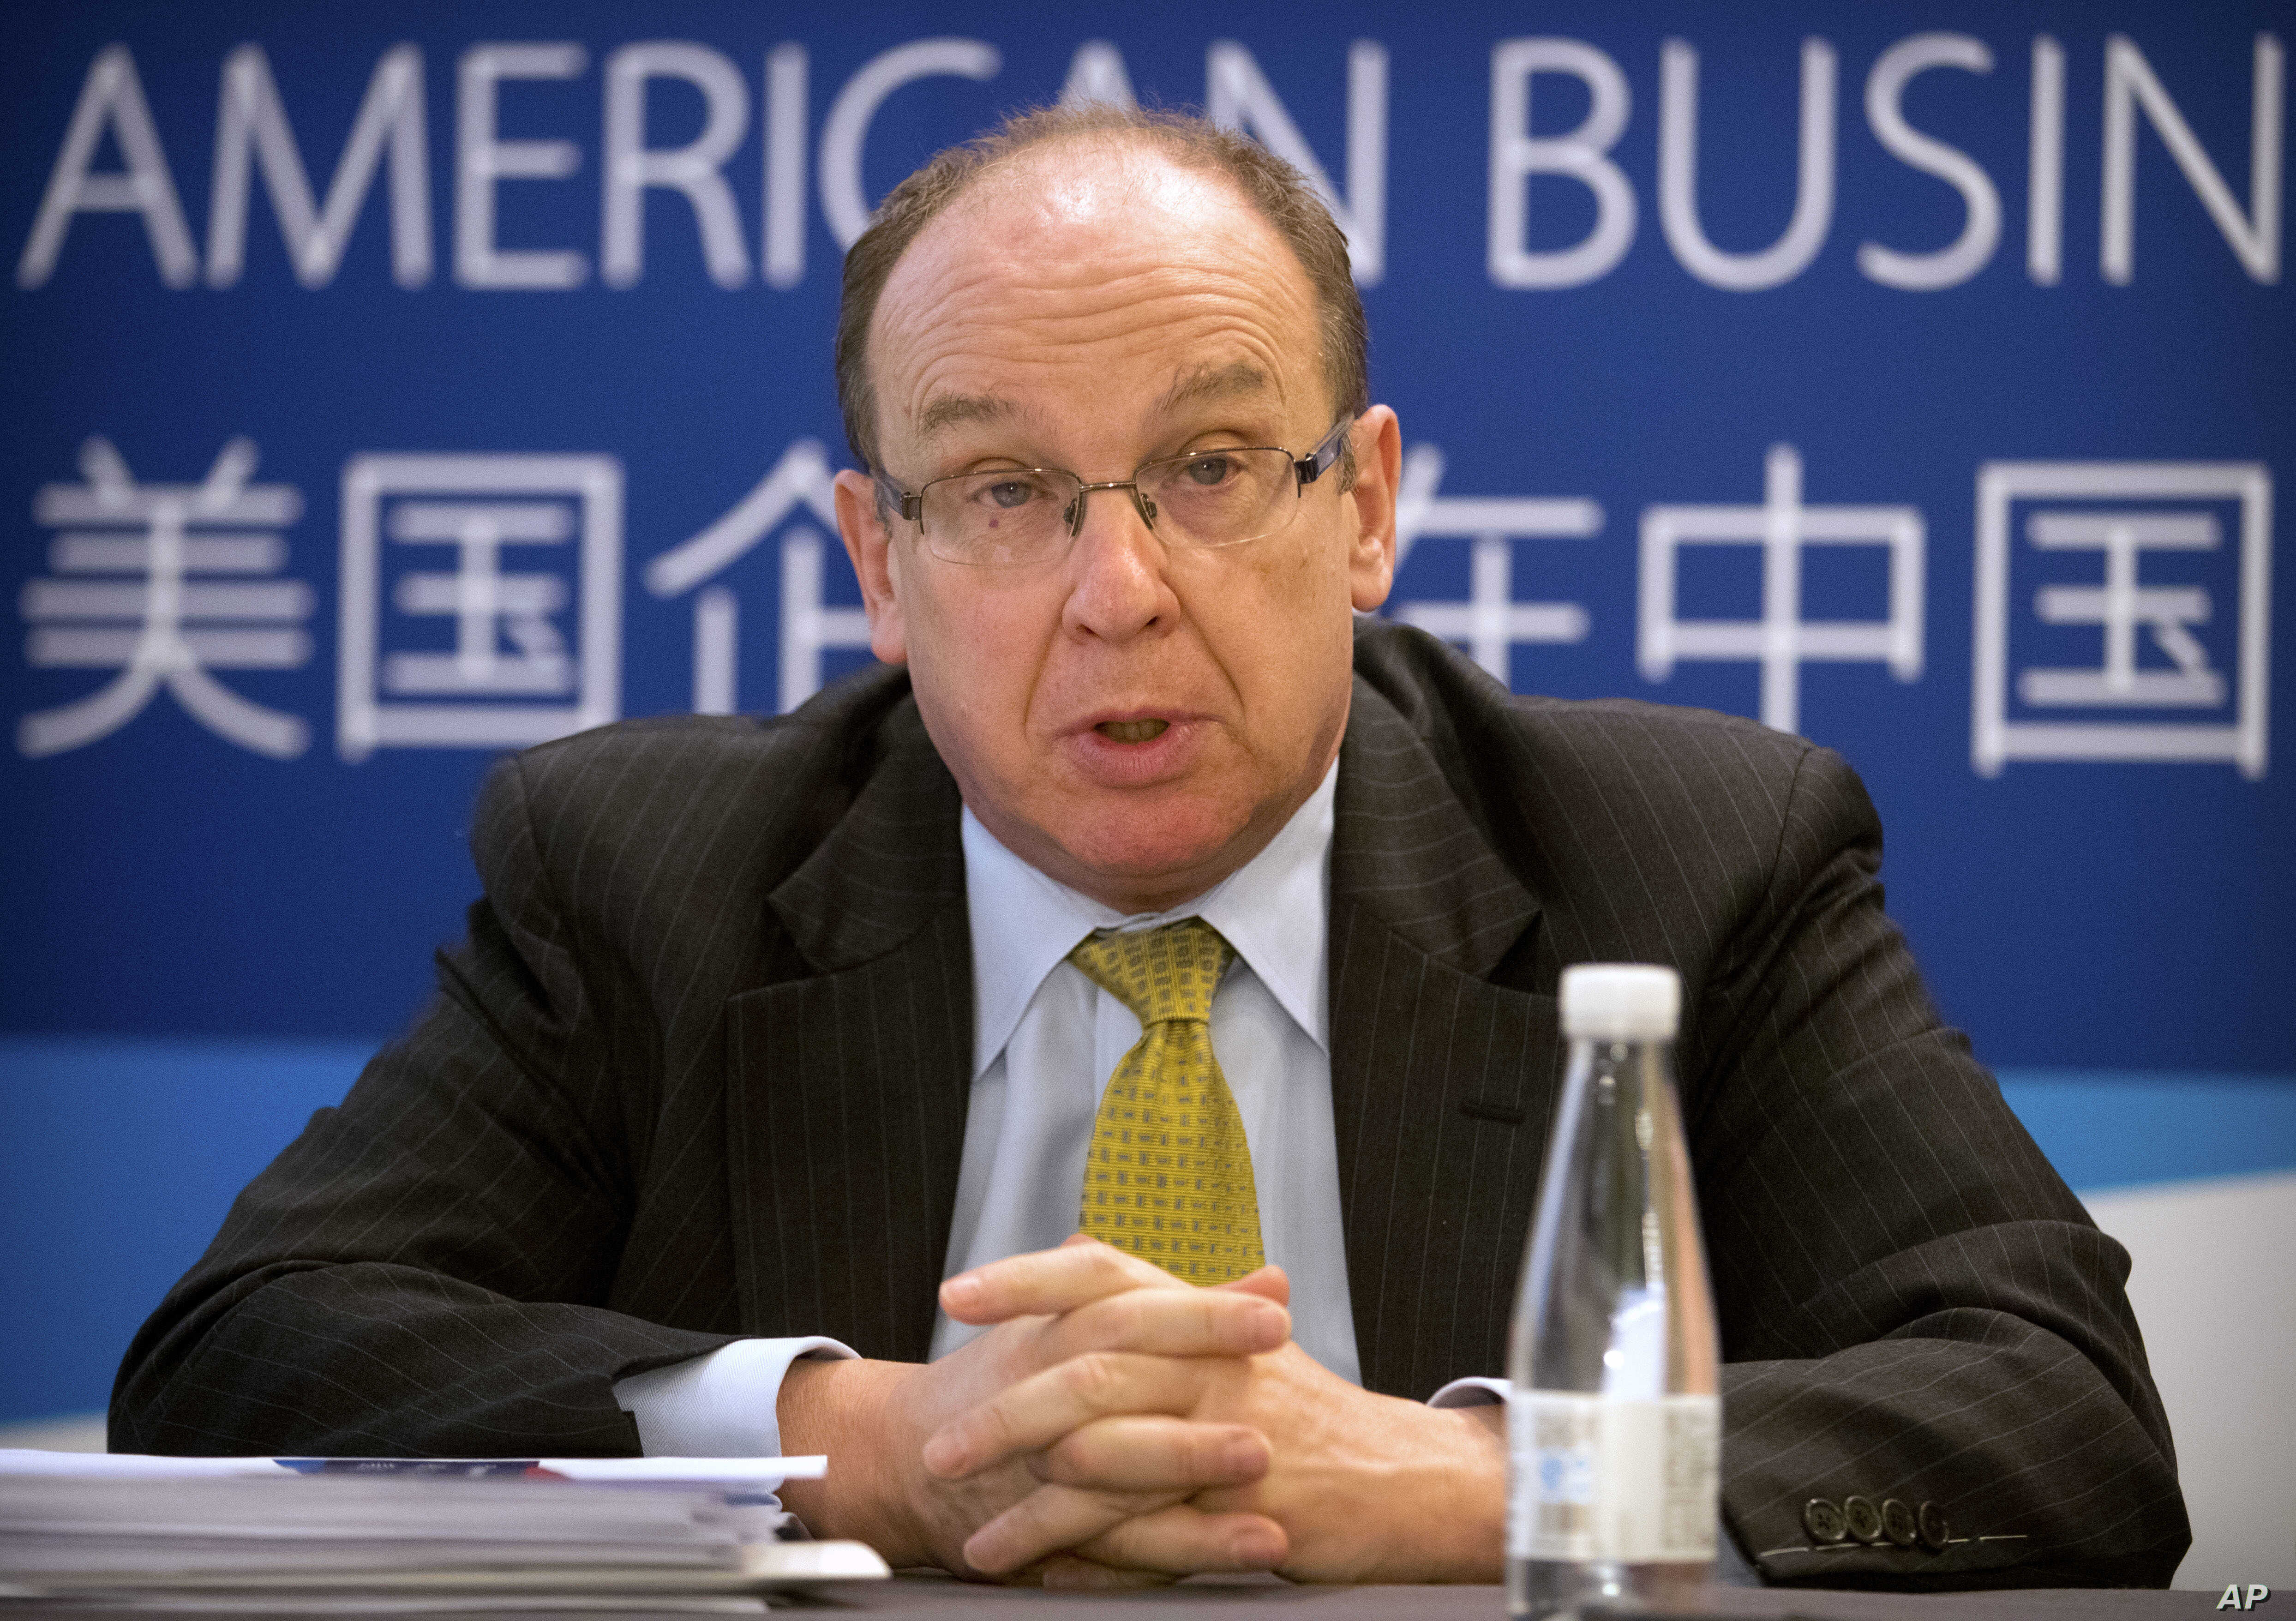 FILE - Lester Ross, chairman of the Policy Committee of the American Chamber of Commerce in China, speaks during a press conference in Beijing for the chamber's annual report on American business in China, Apr. 18, 2017.